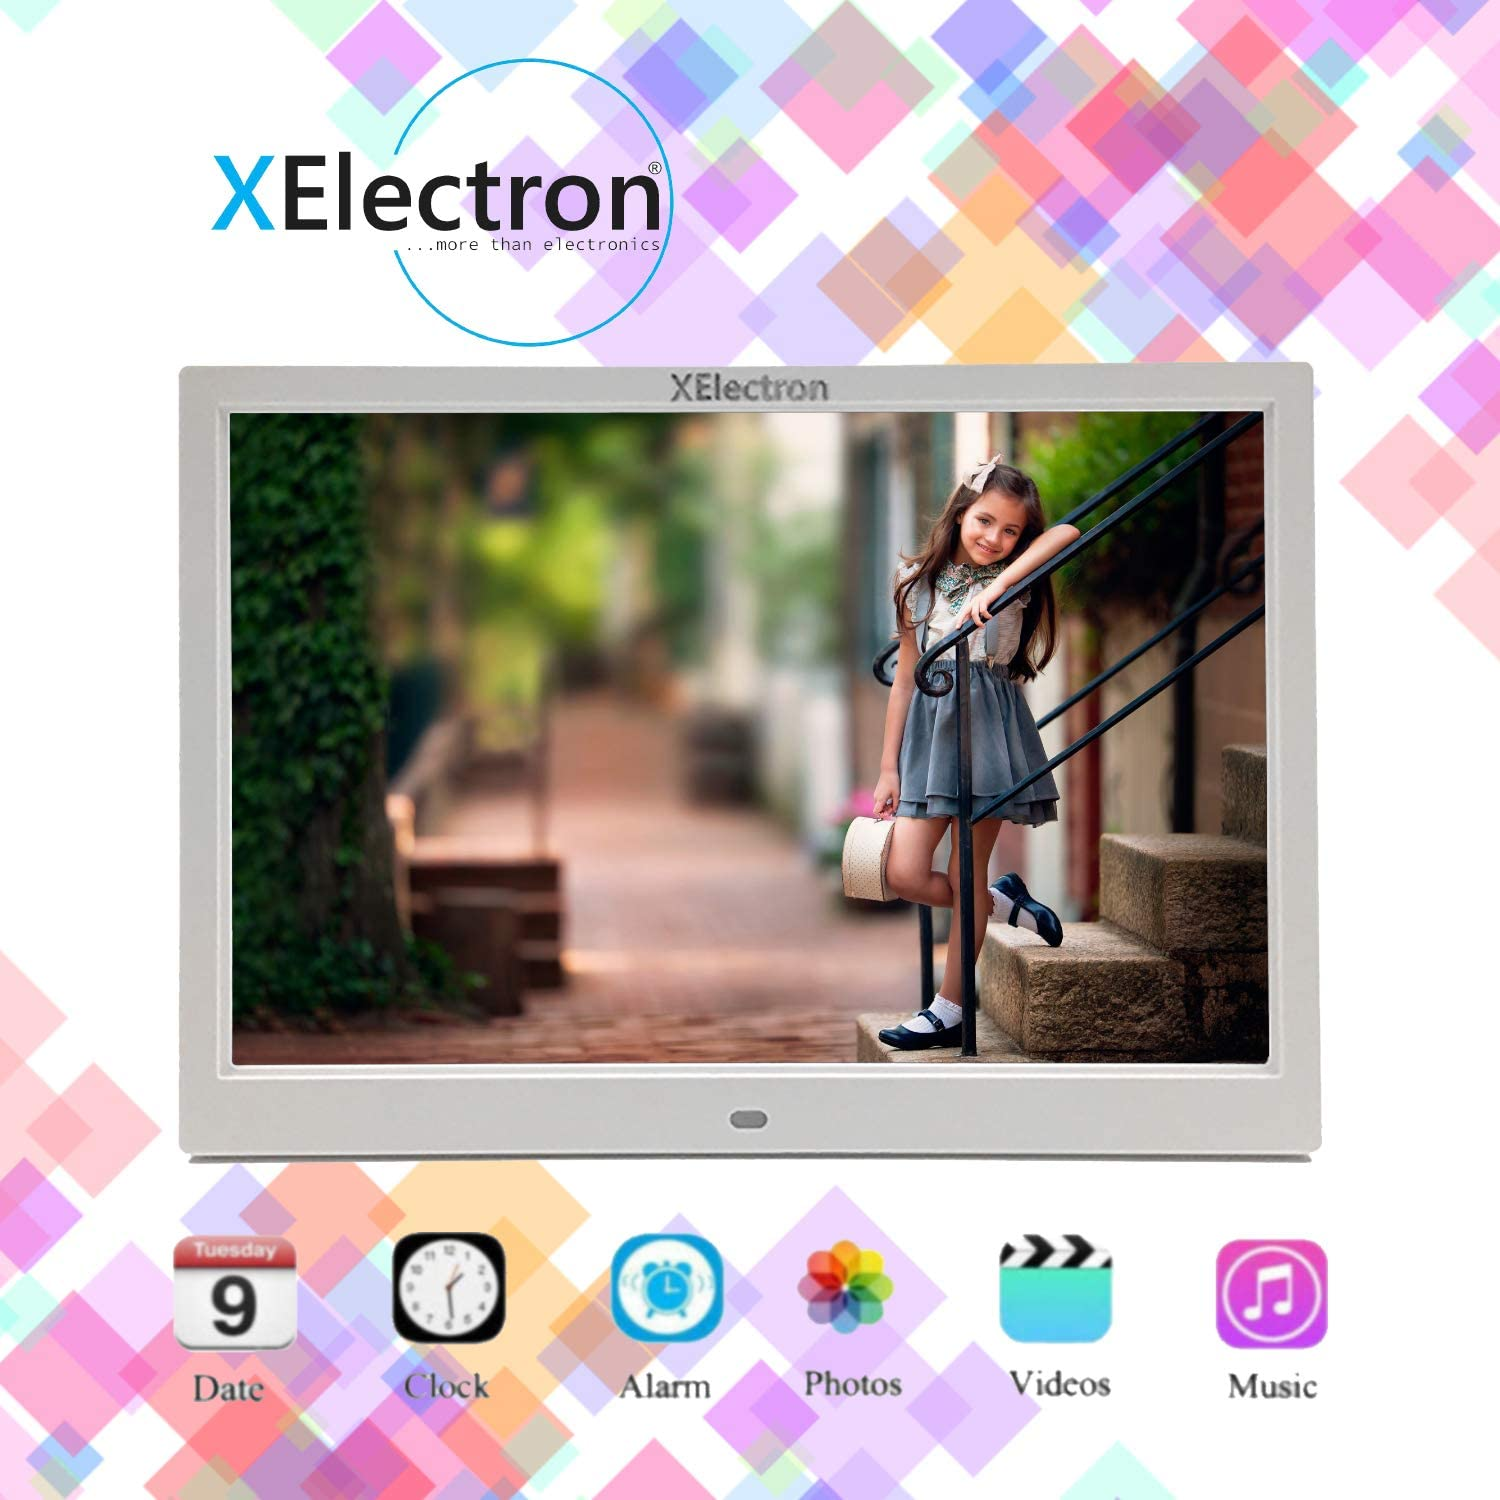 XElectron 12 Inch Digital Photo Frame 1920x1080 High Resolution Full IPS Display Photo//Music//Video Player Calendar Alarm On//Off Timer Support USB and SD Card Remote Control Black